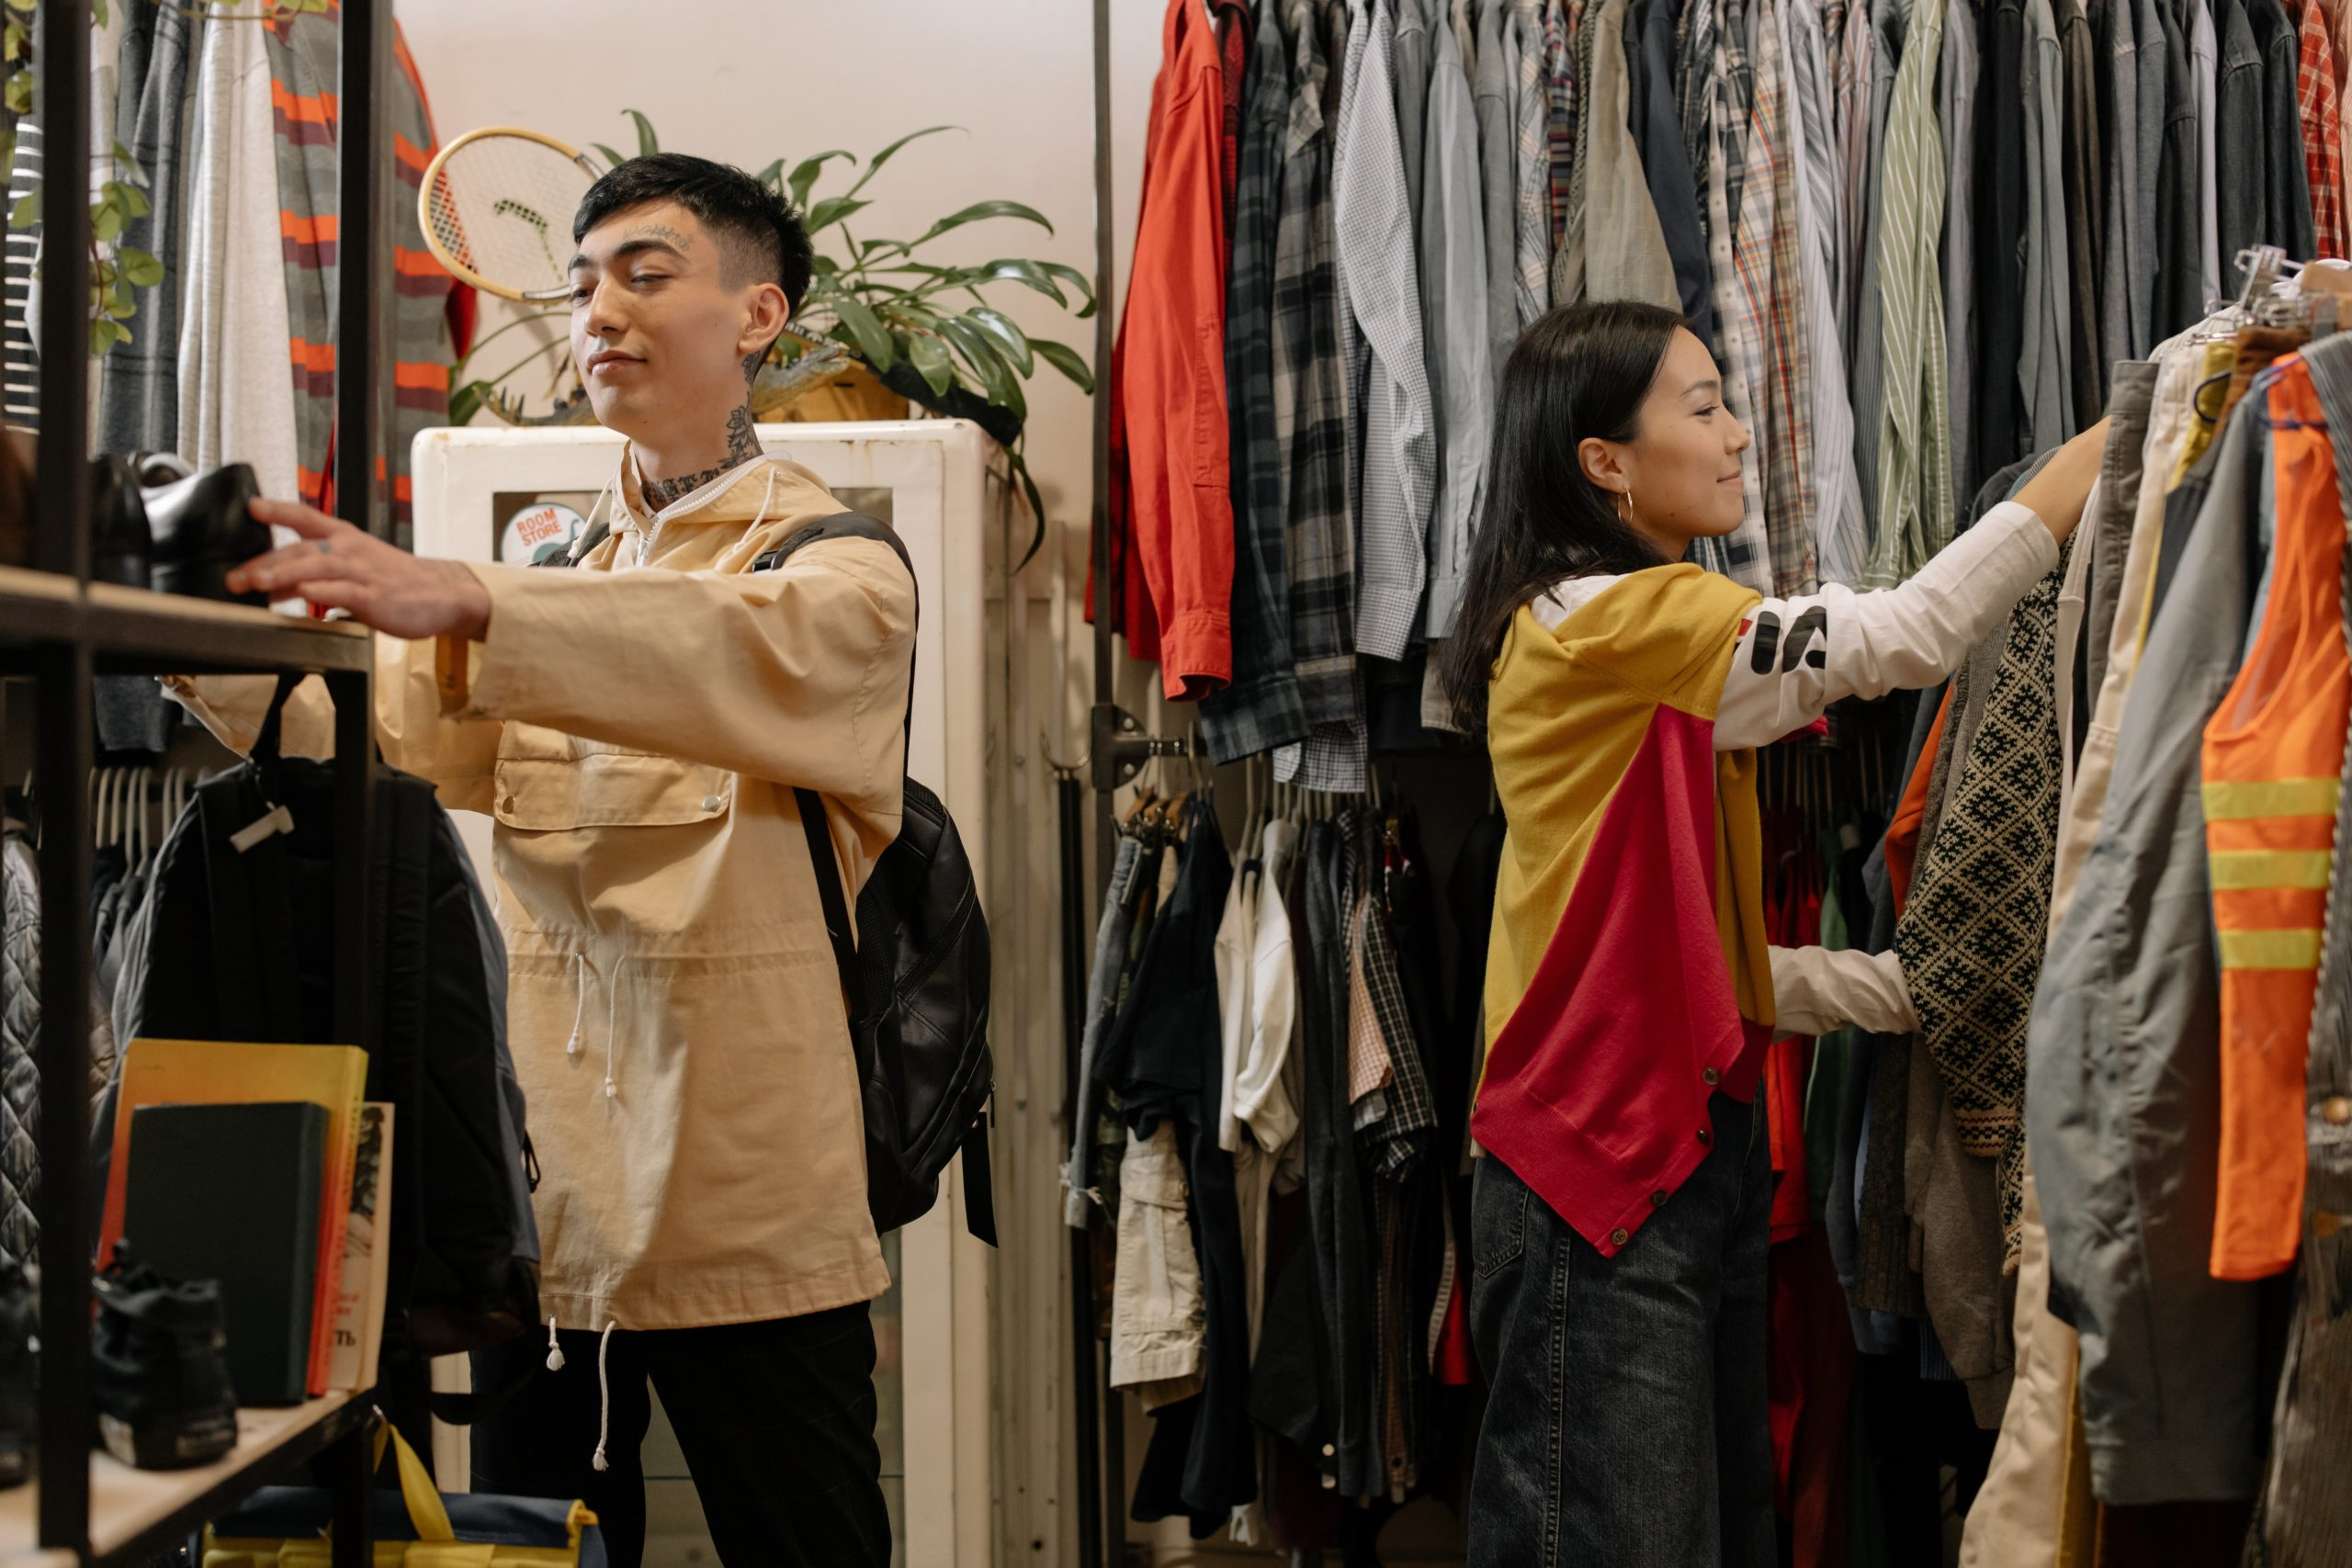 WHY YOU SHOULD RECYCLE YOUR CLOTHES INSTEAD OF BINNING THEM